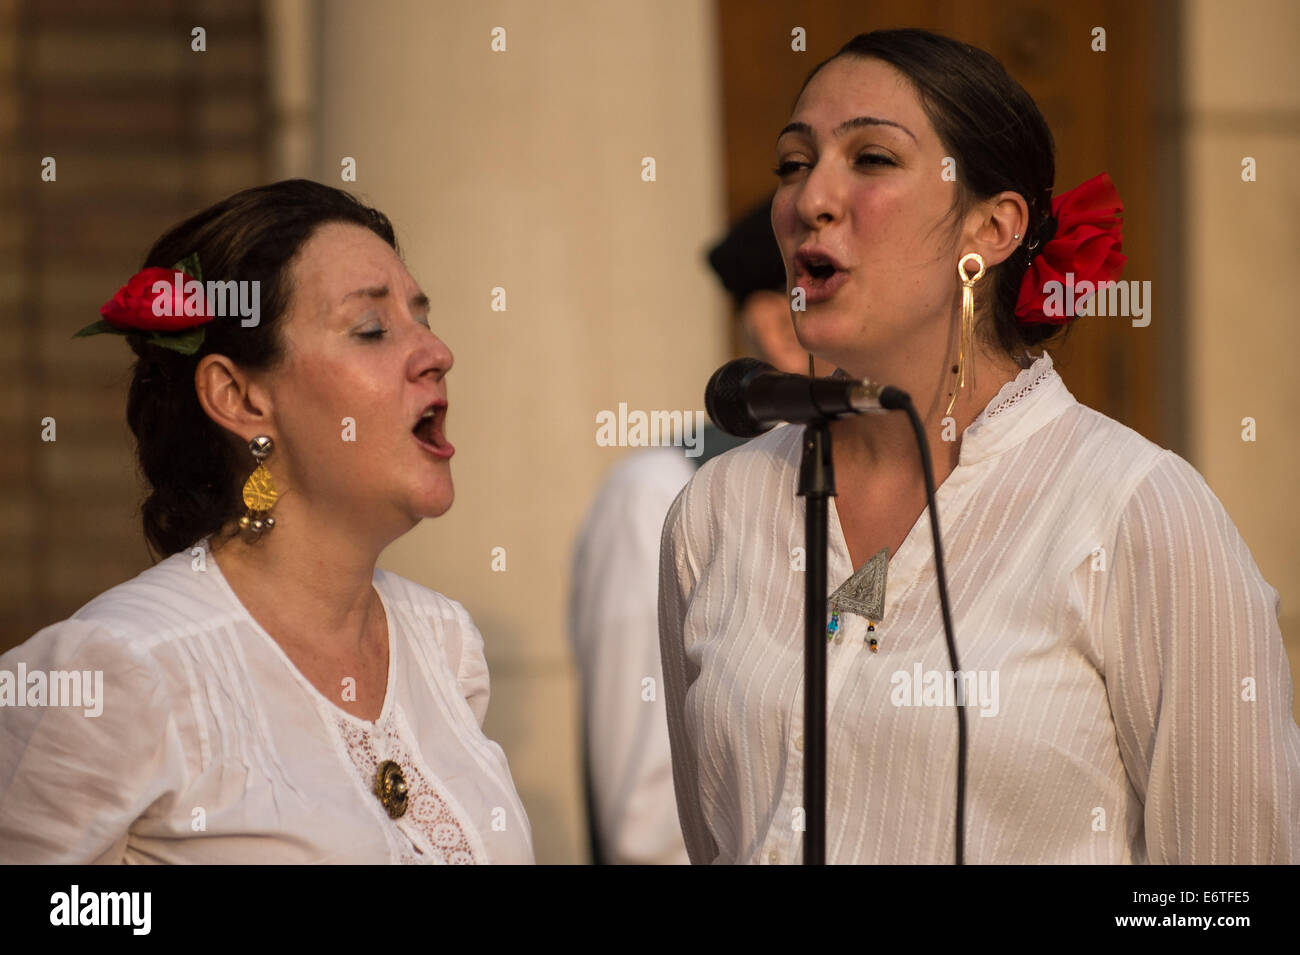 Ohio, US. 30th Aug, 2014. Christa Mosca (left) and Eleni Christoldulelis (right) of the Hellenic Singers perform - Stock Image